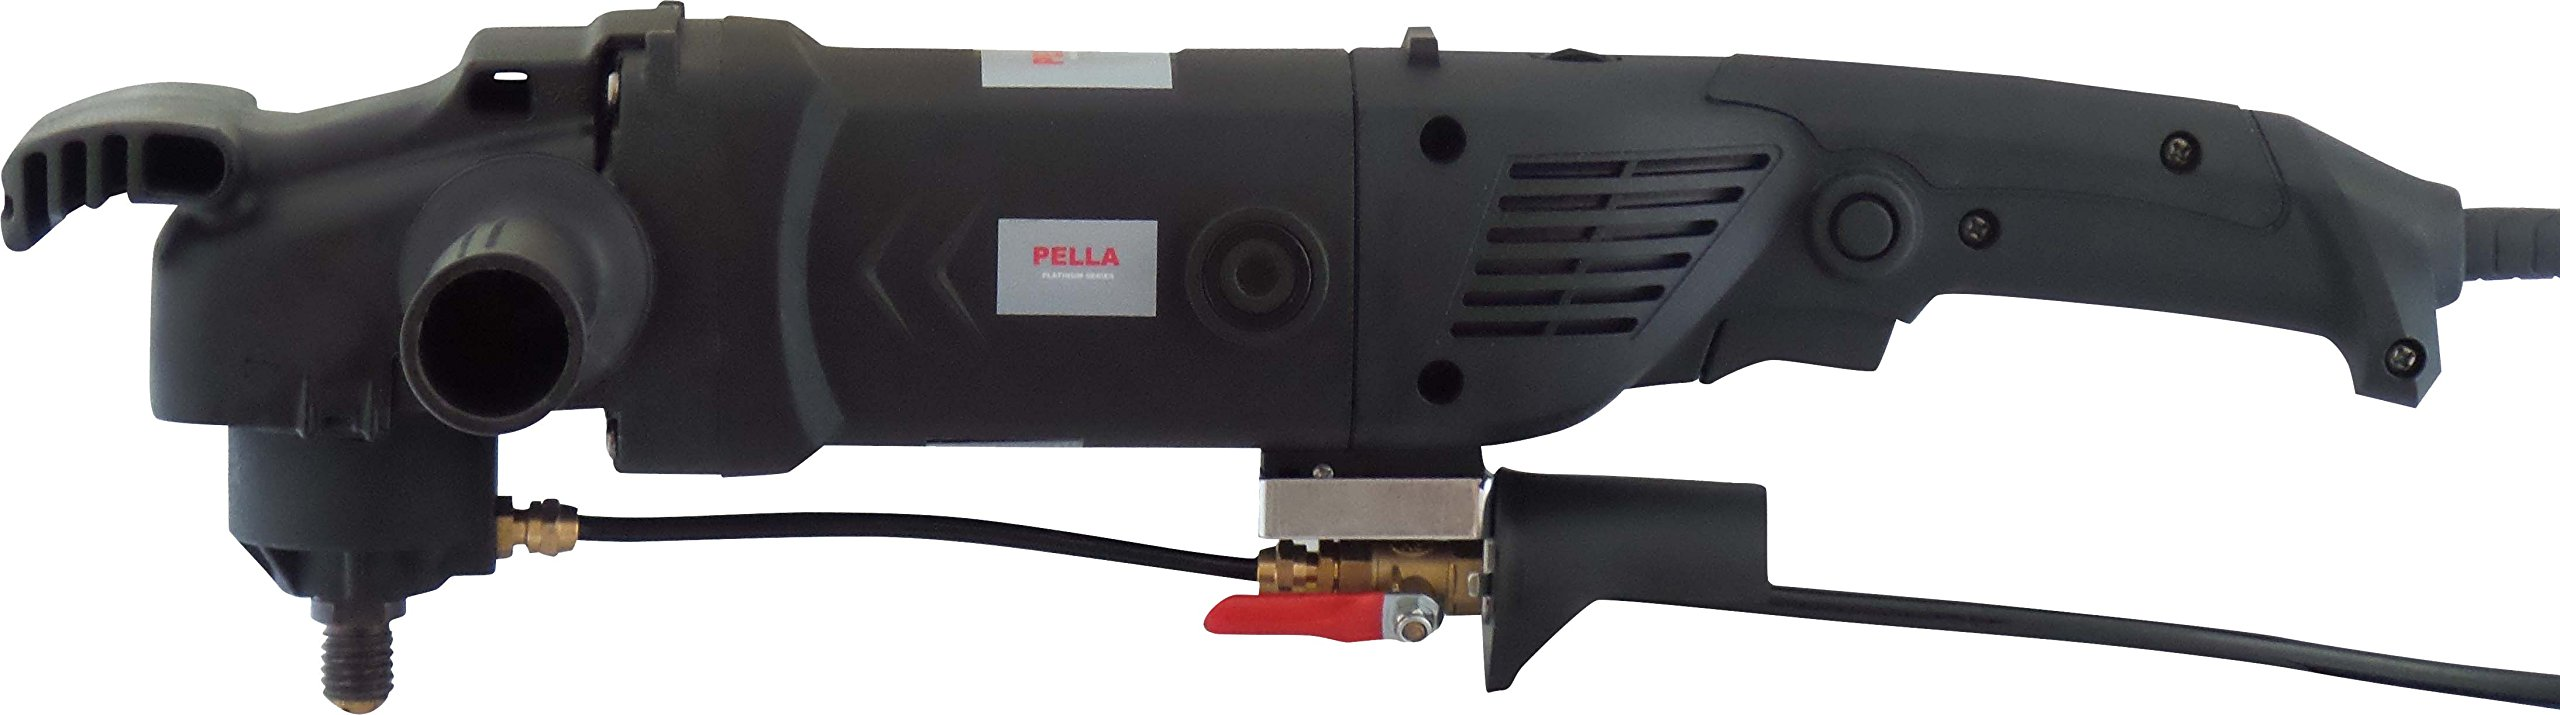 PELLA USA 1200 WATT HEAVY DUTY STONE POLISHER/GRINDER FITS 4''-7'' DIAMETER PADS